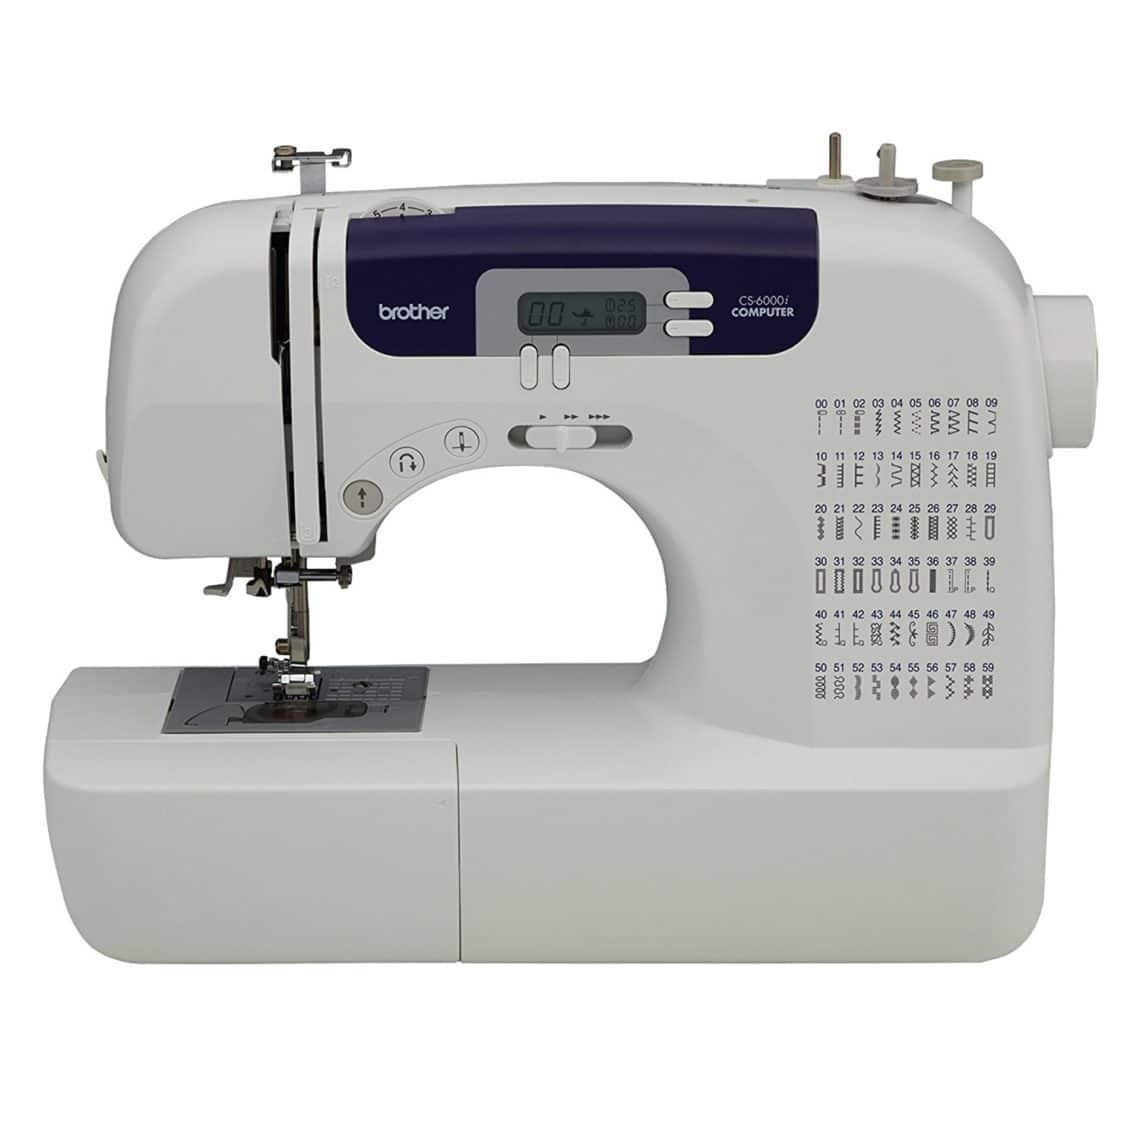 Brother CS6000i best sewing machine